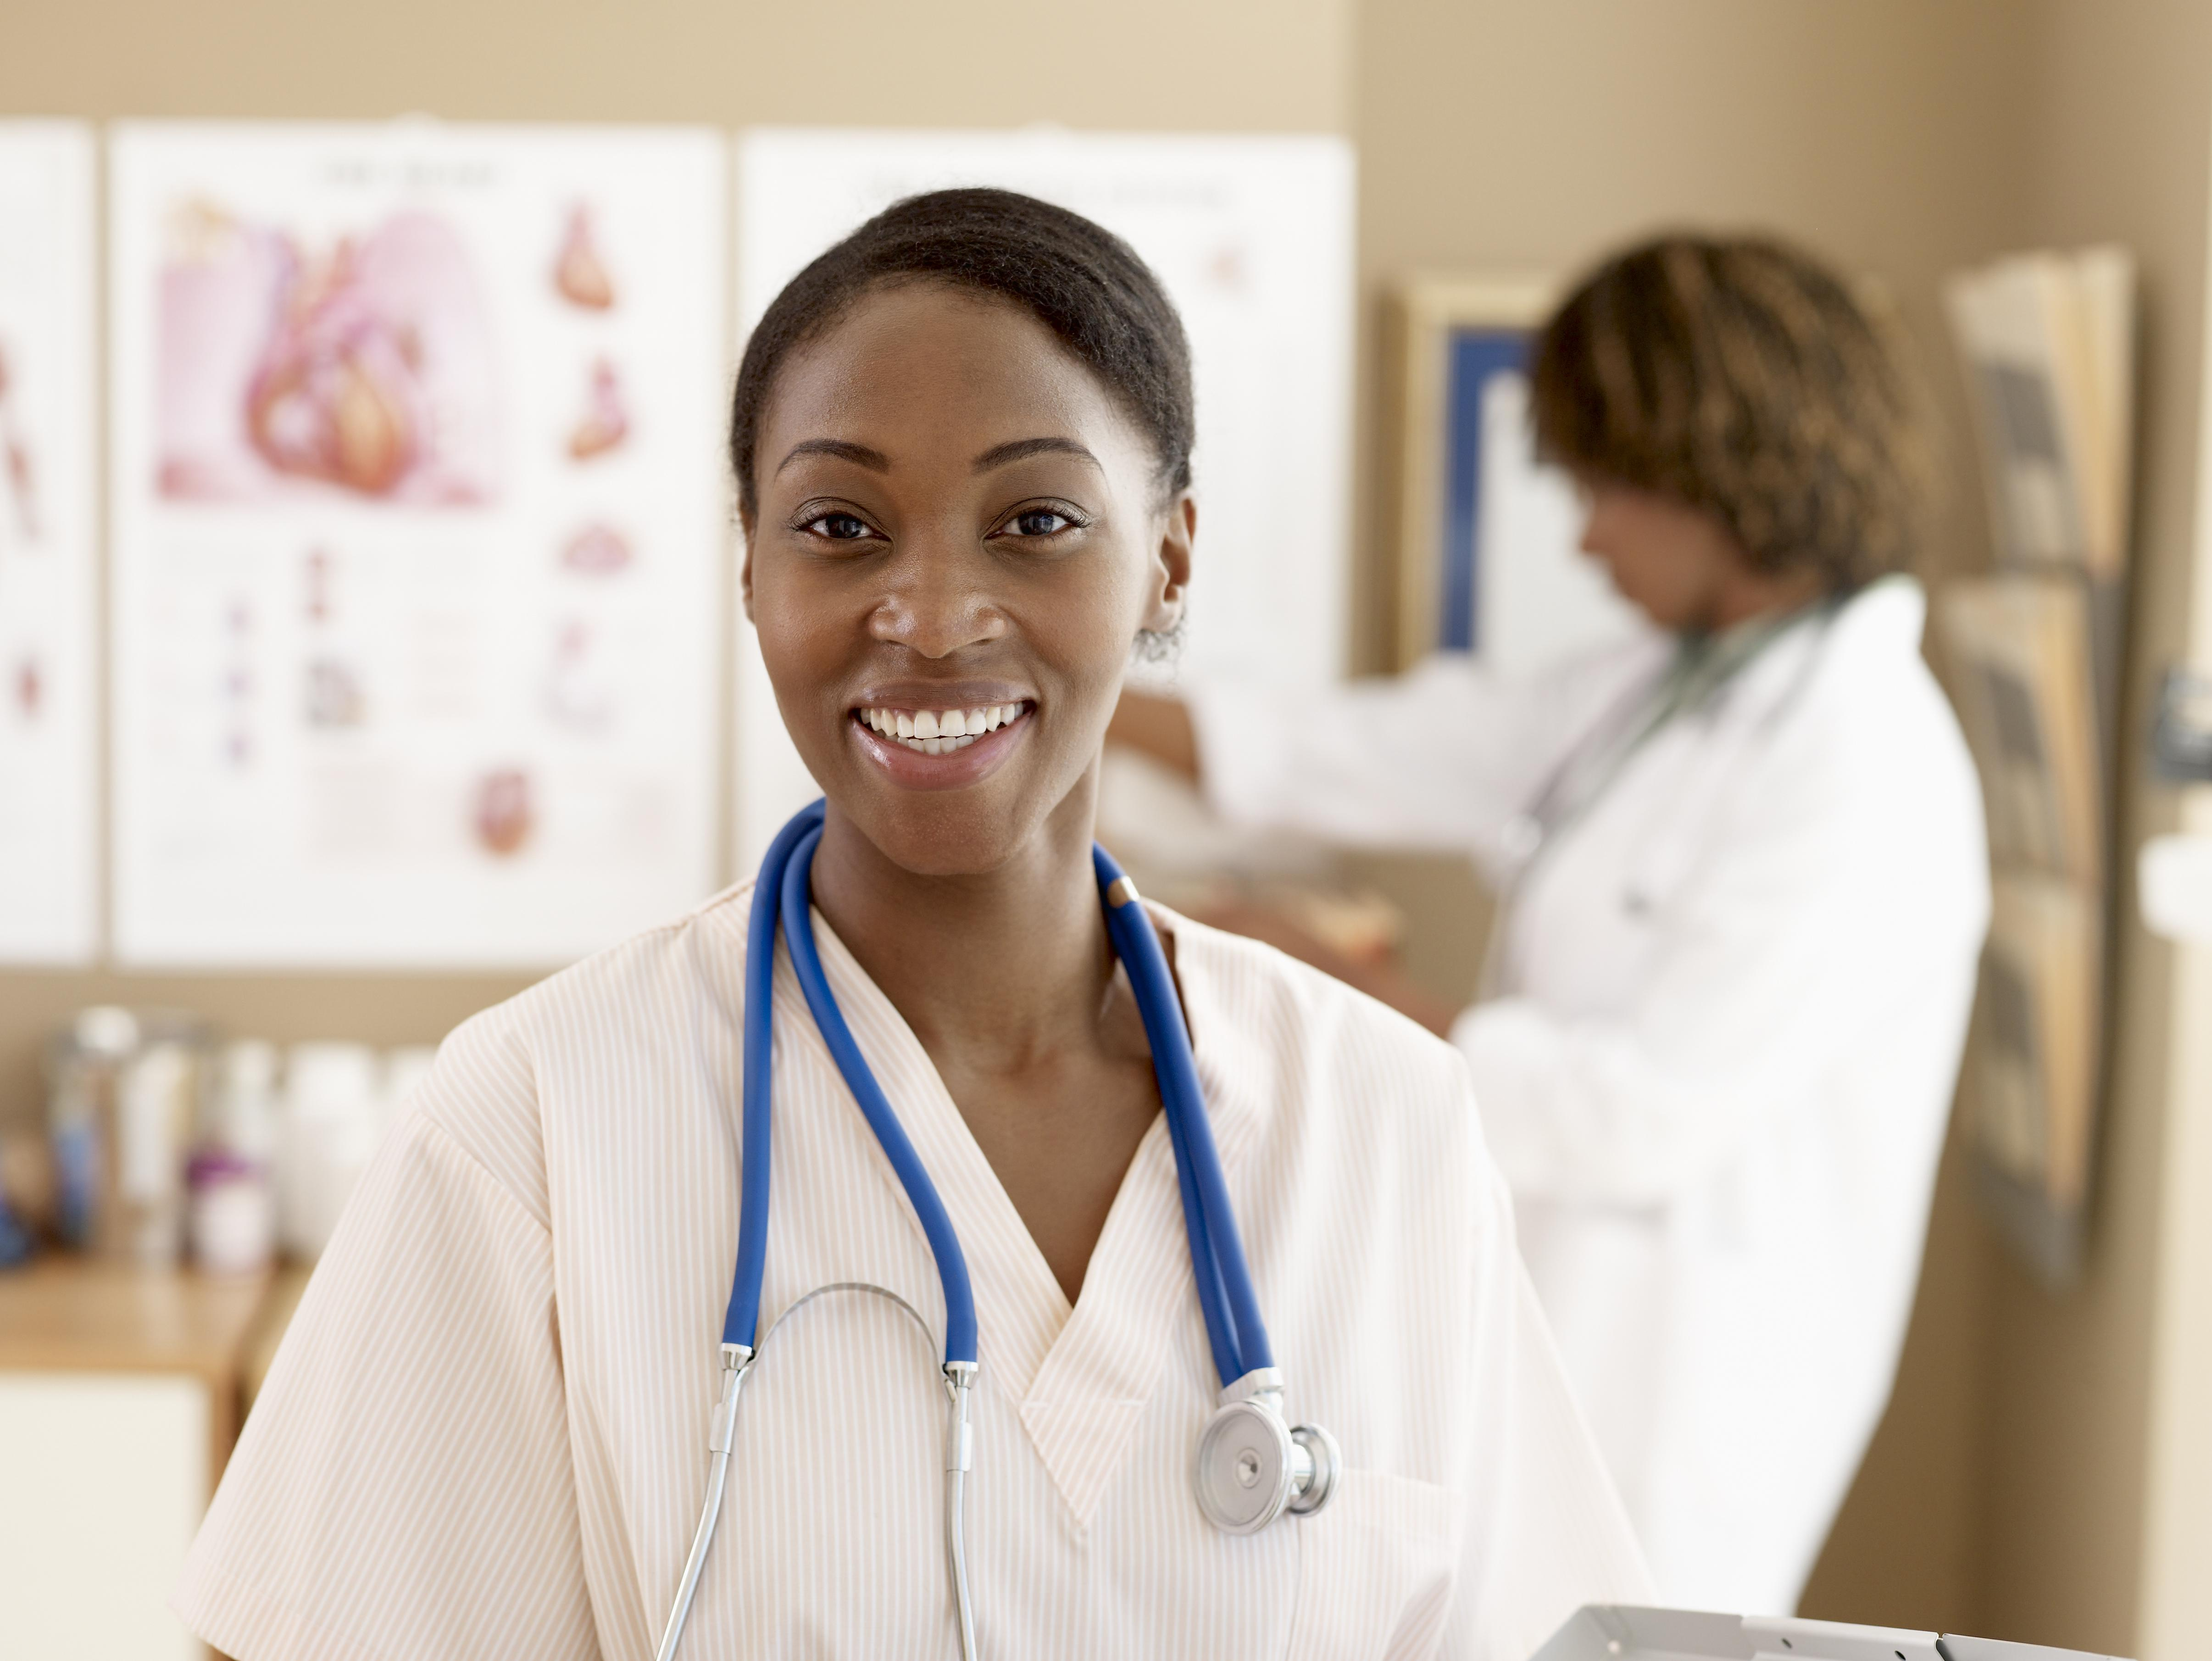 Female nurse standing with doctor, focus on nurse